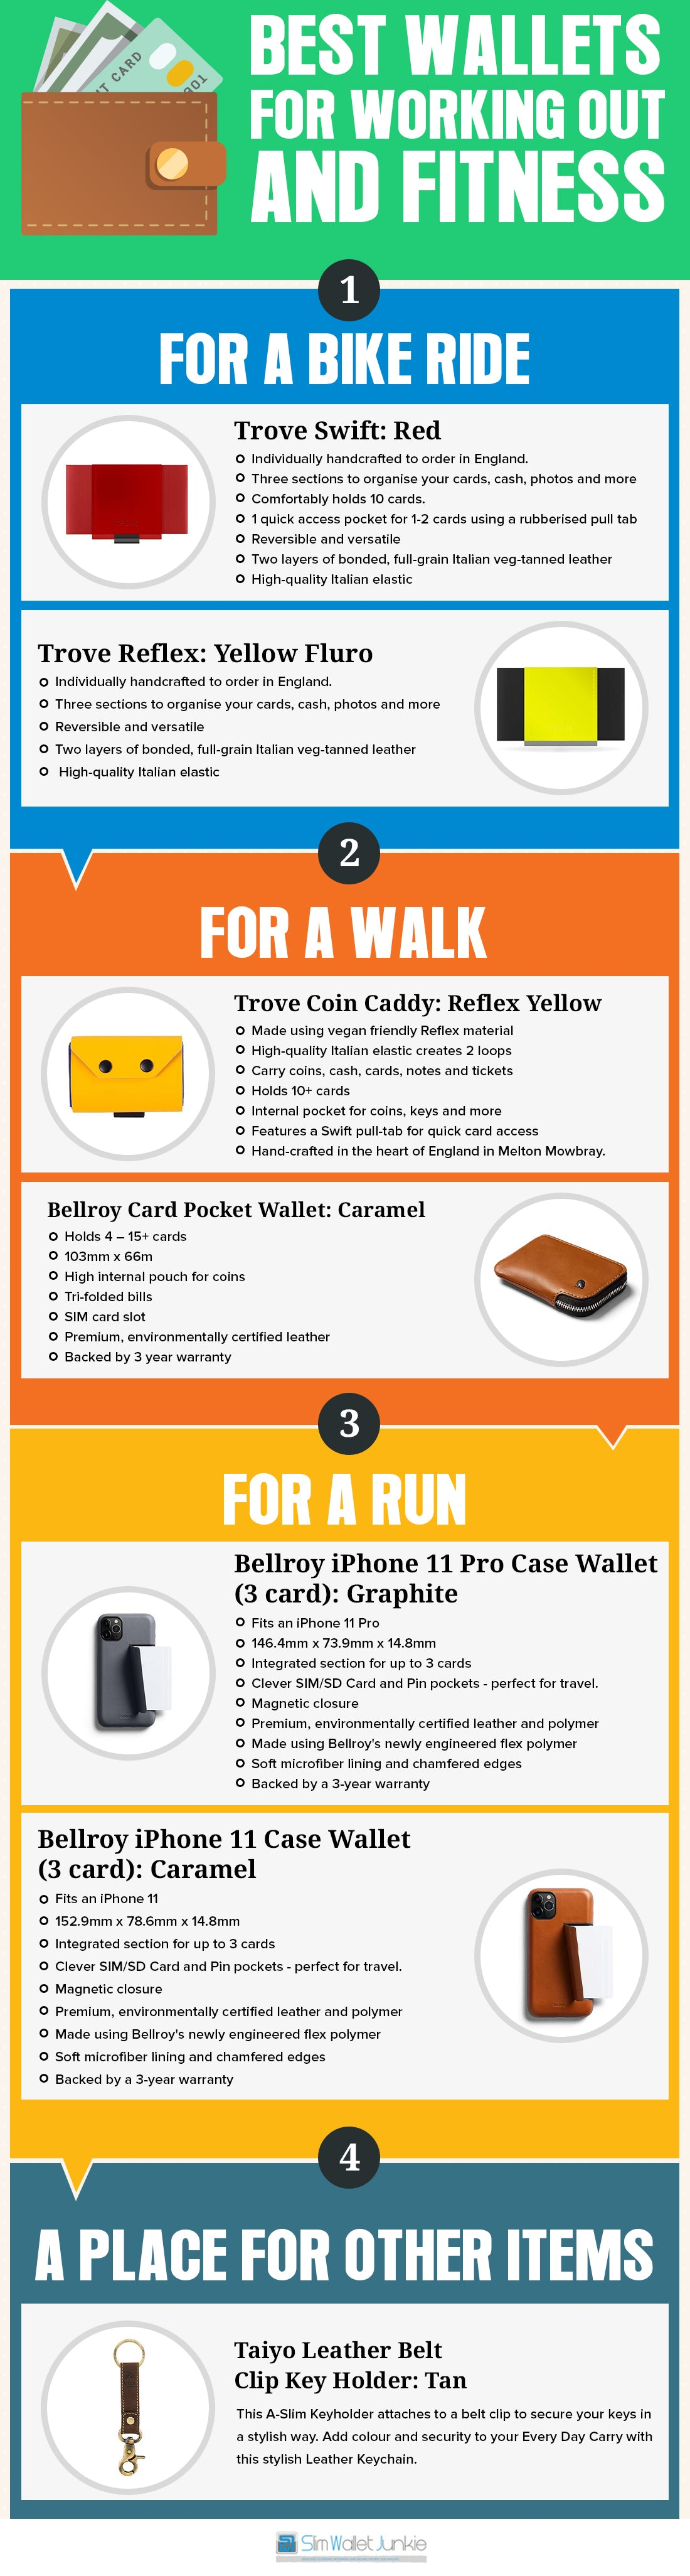 Best Wallets for Fitness and Work out Infographic